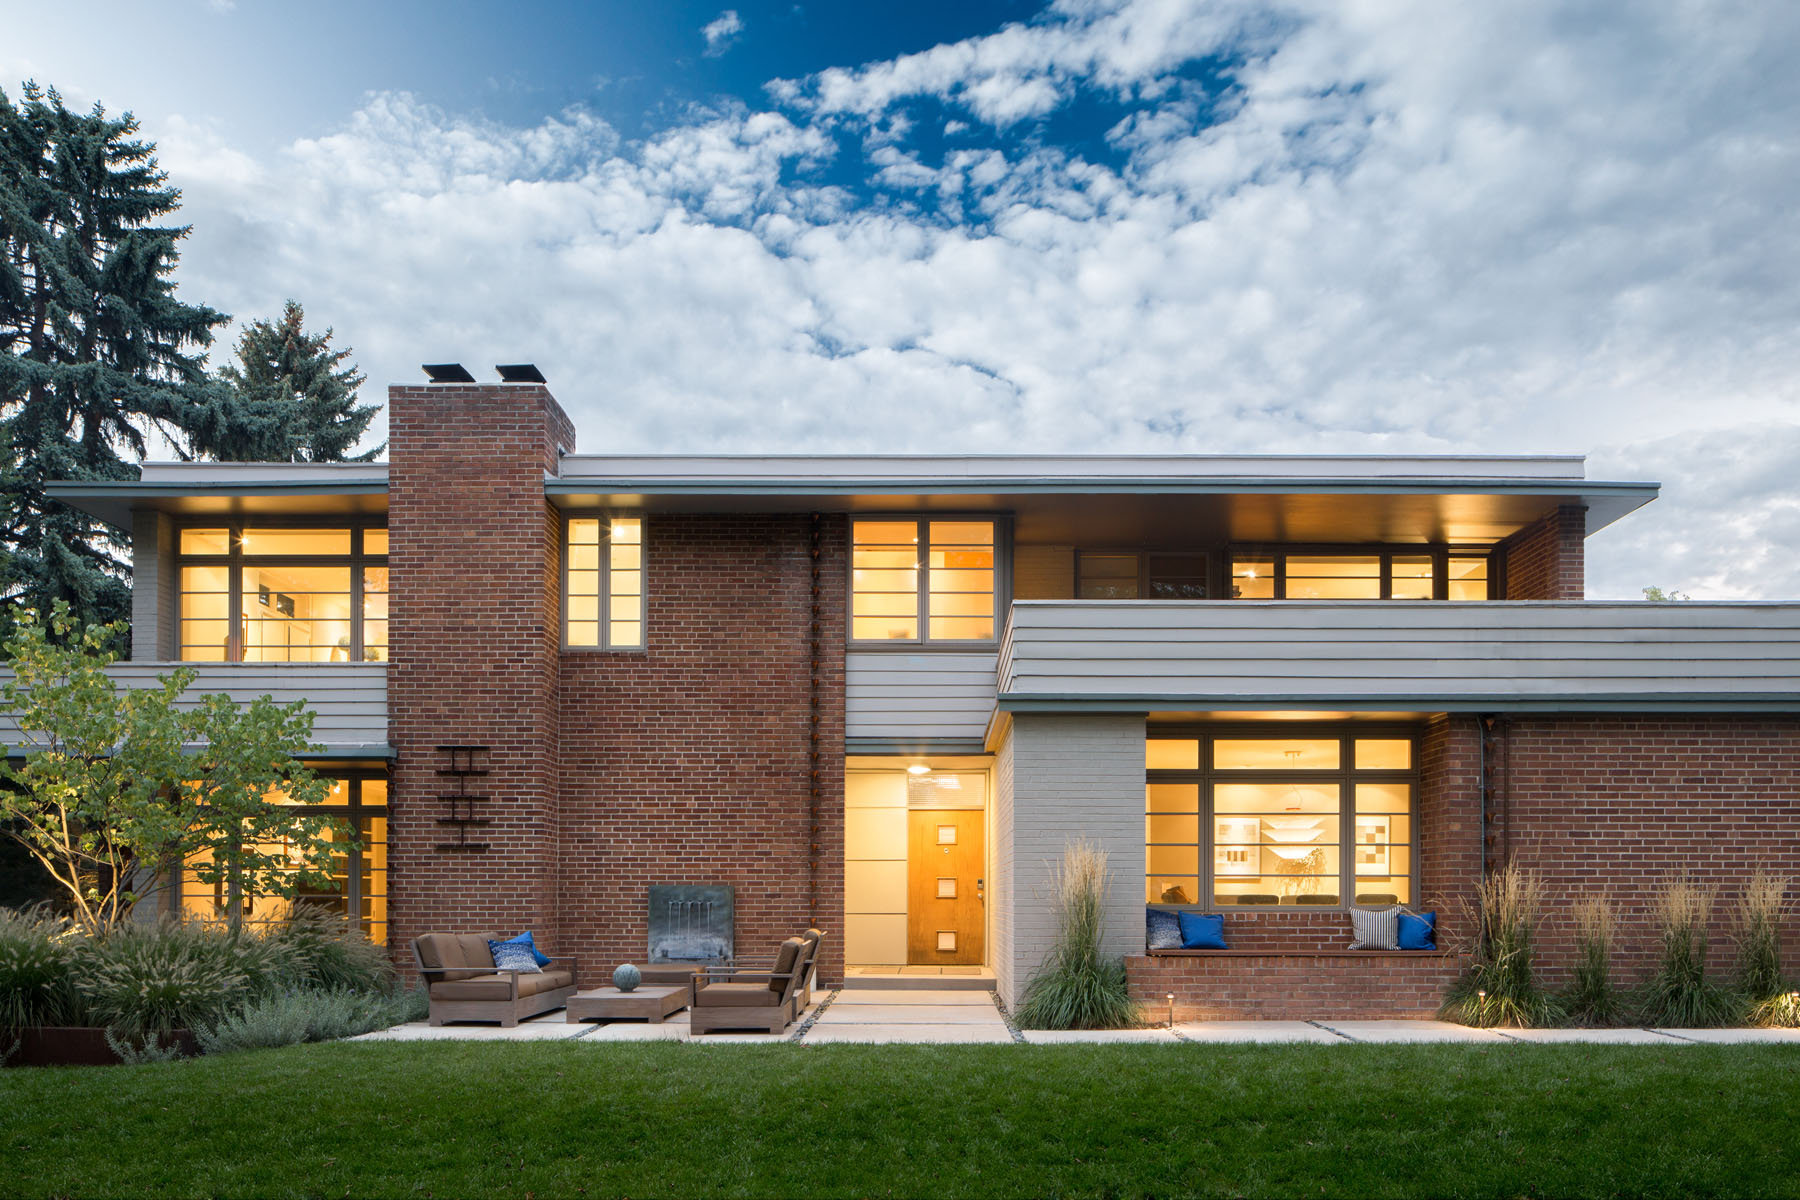 Single Family Home for Sale at FRANK LLOYD WRIGHT'S USONIAN STYLE MID-CENTURY MODERN 5435 East 6th Avenue Parkway Hilltop, Denver, Colorado, 80220 United States